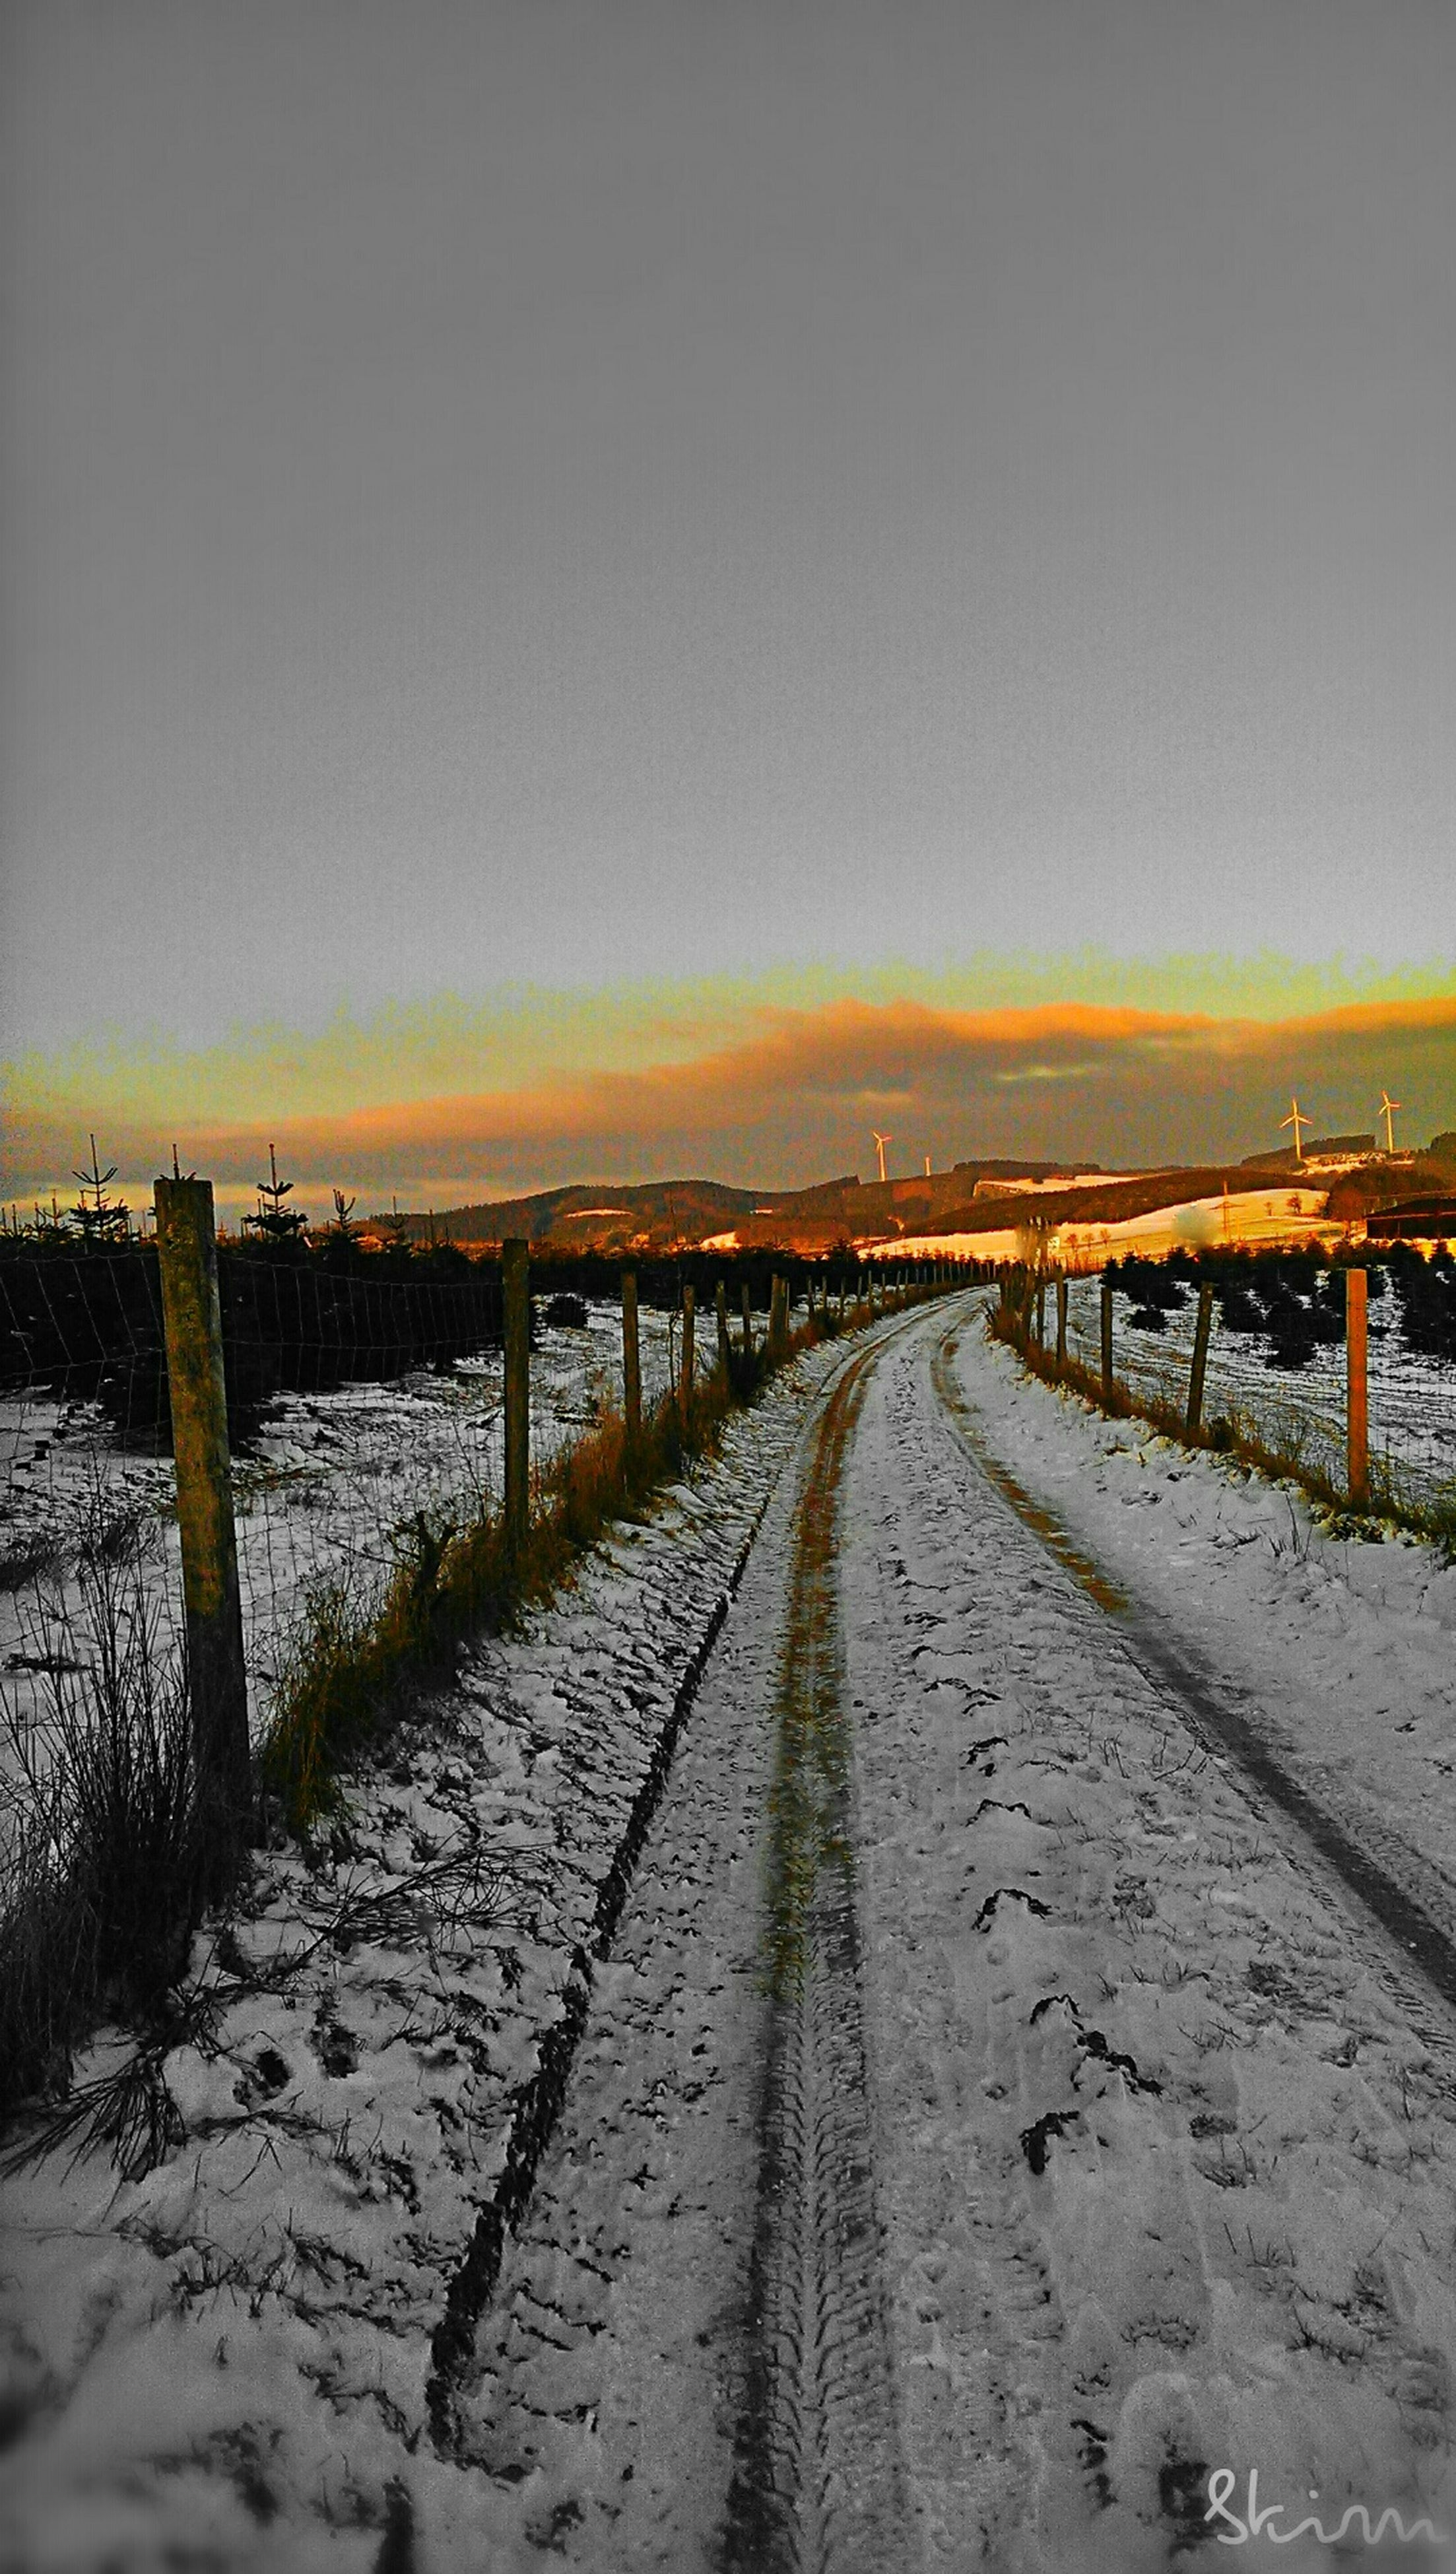 the way forward, diminishing perspective, vanishing point, tranquility, winter, tranquil scene, snow, cold temperature, weather, nature, long, season, clear sky, scenics, copy space, landscape, sky, beauty in nature, sunset, empty